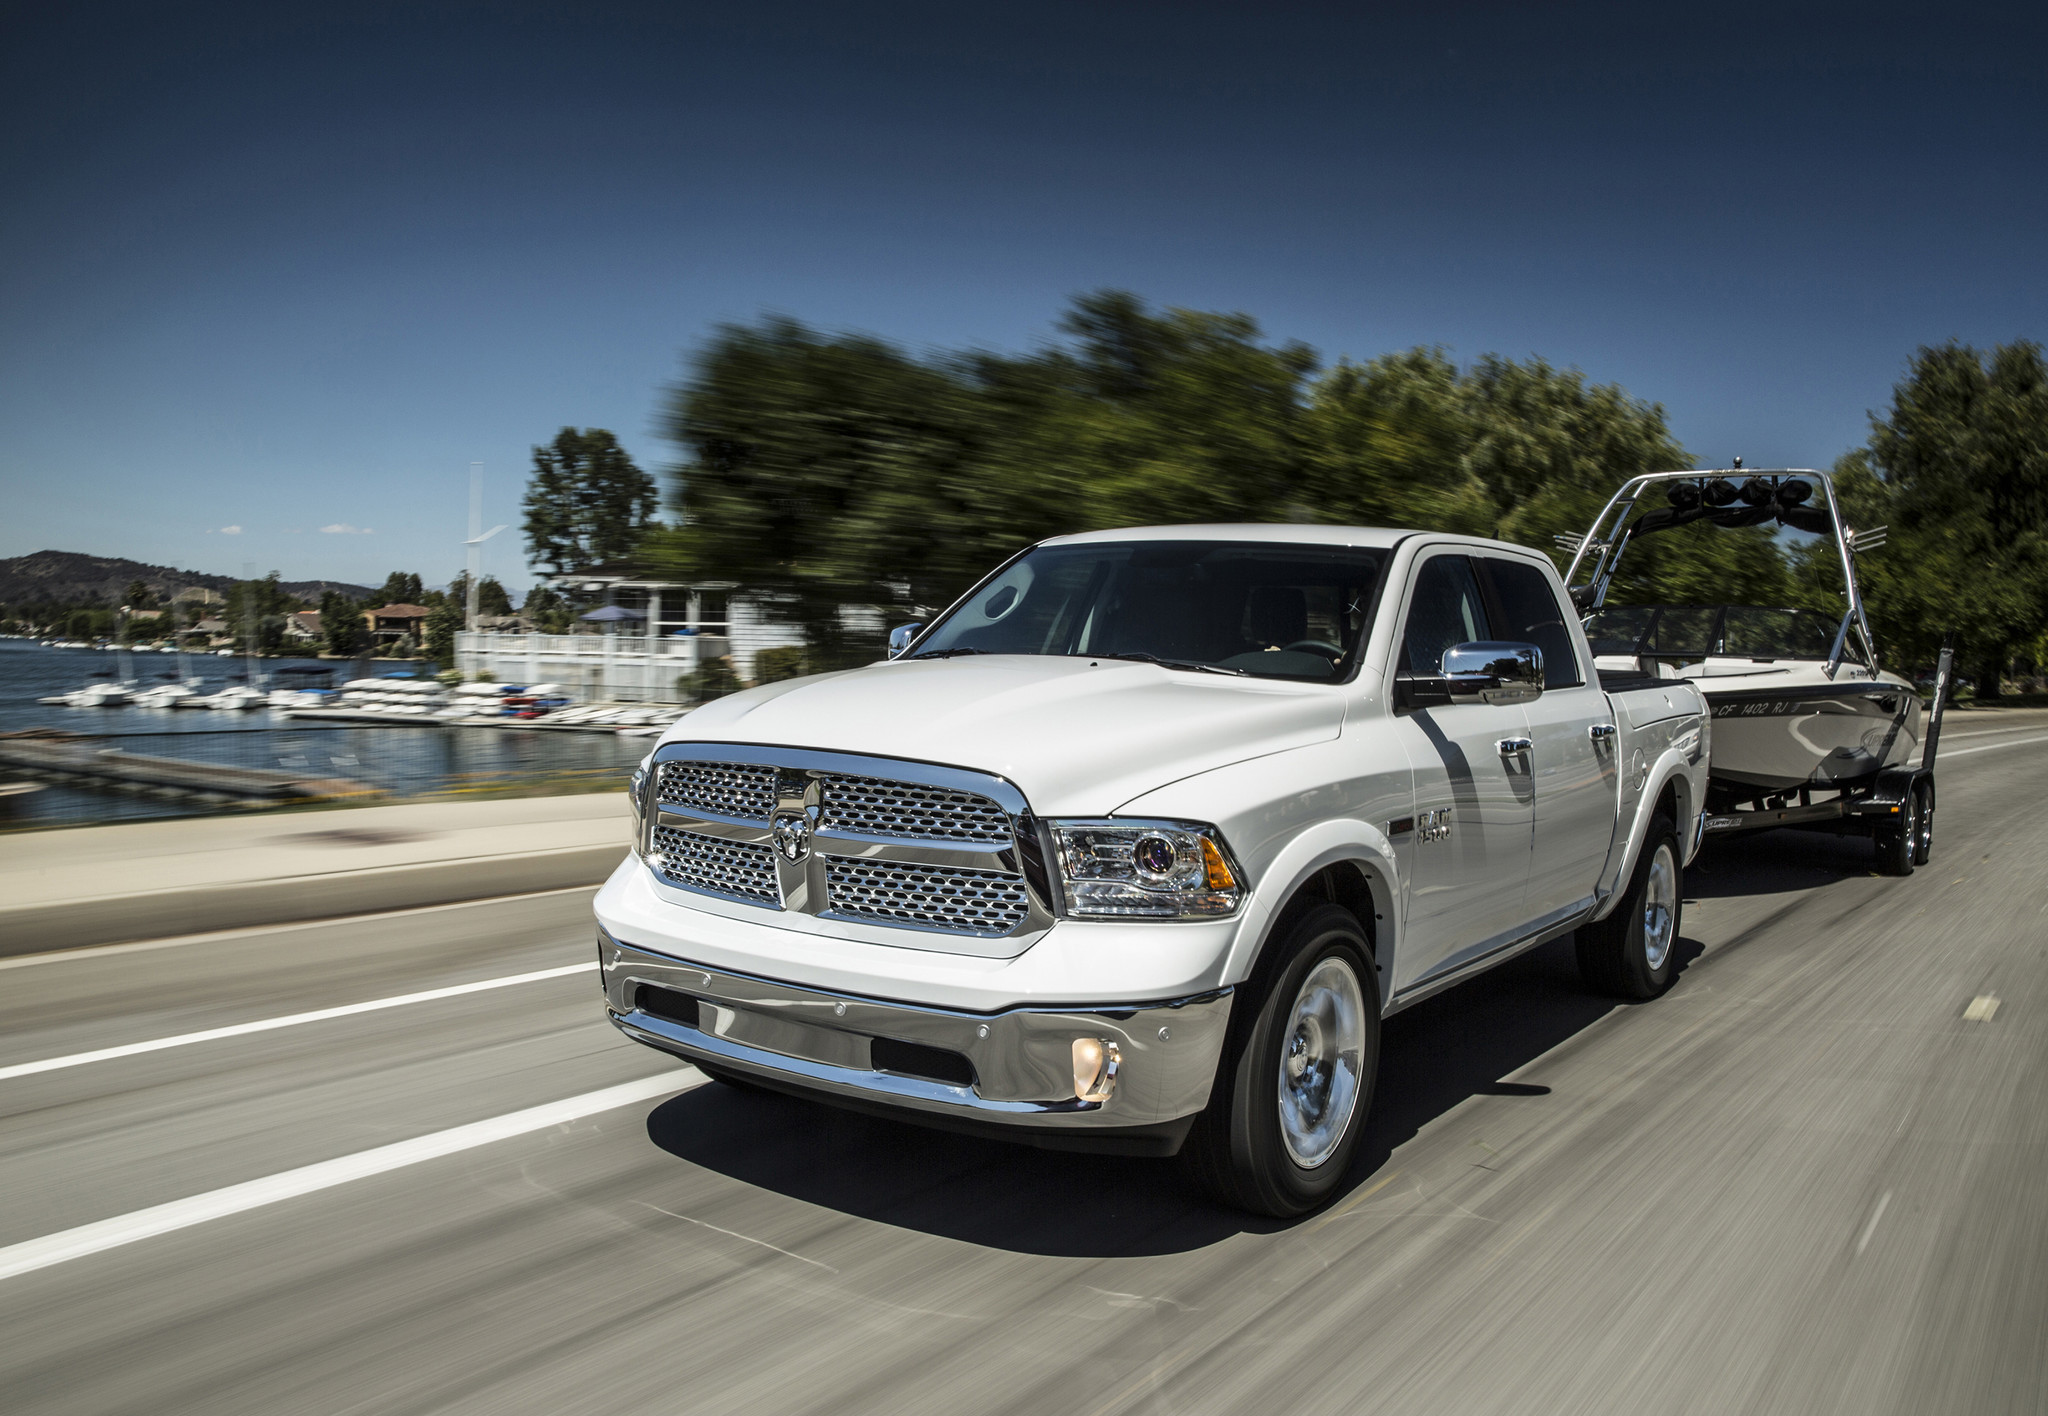 Ram 1500 EcoDiesel is built to tow The San Diego Union Tribune